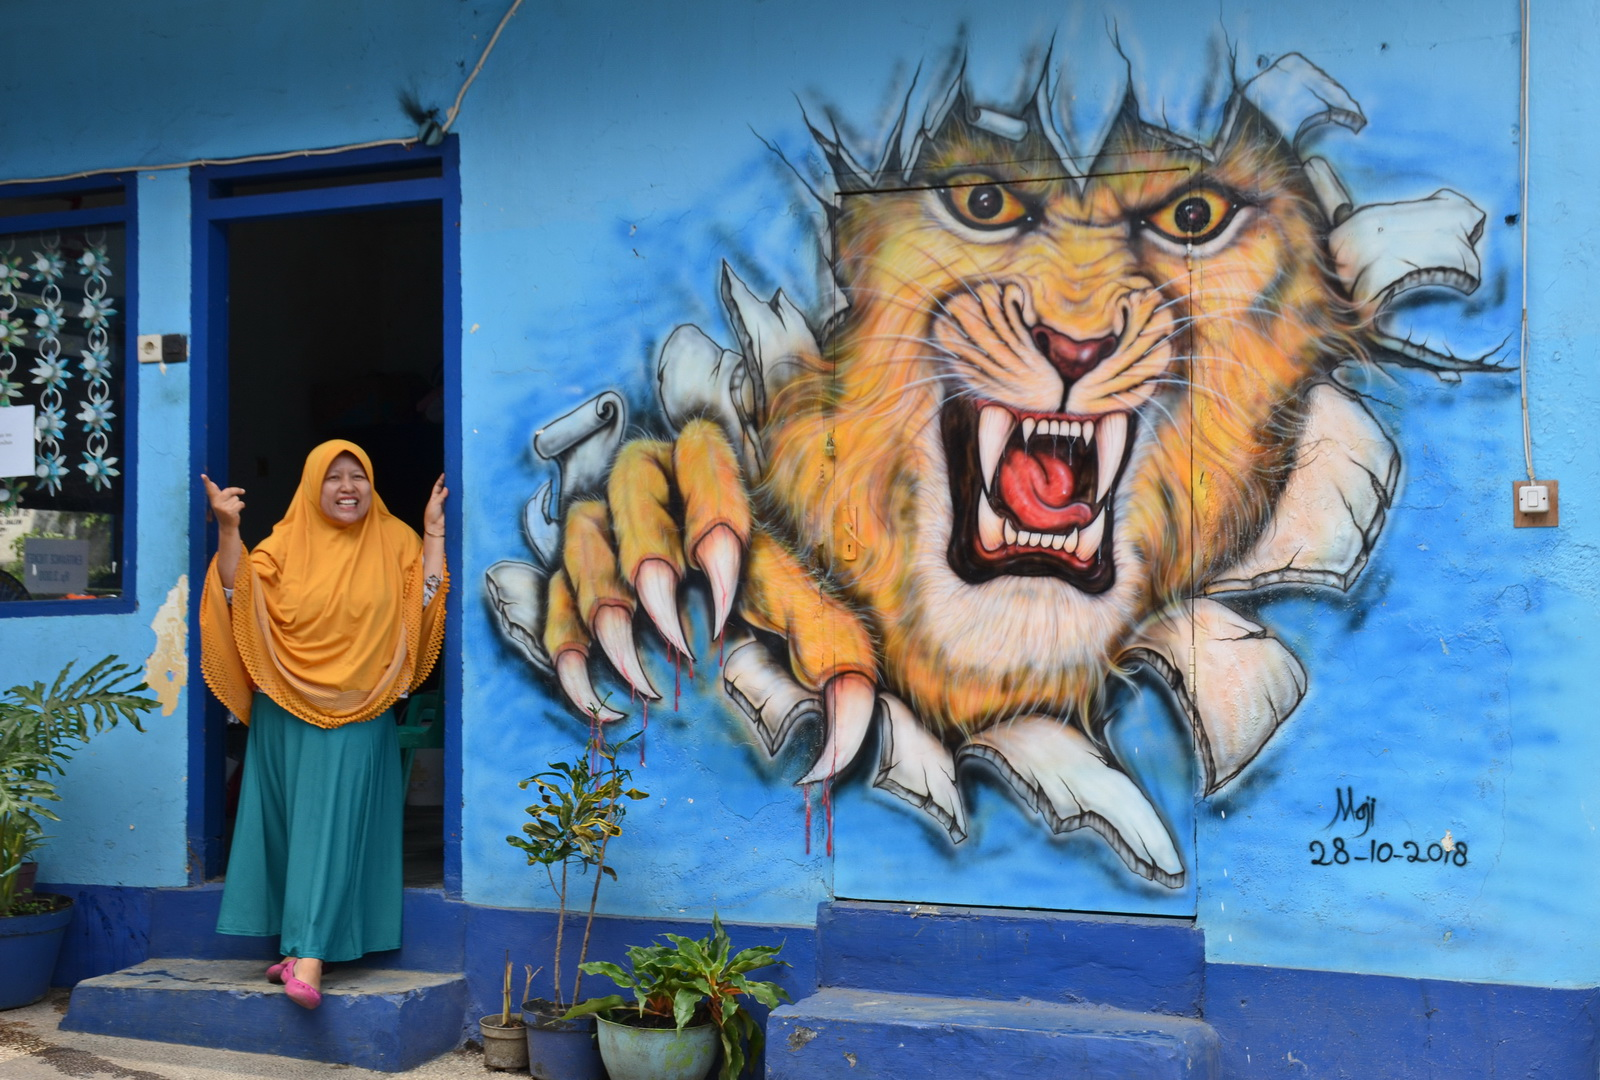 Indonesia. The local team, Arema FC's mascot being a lion